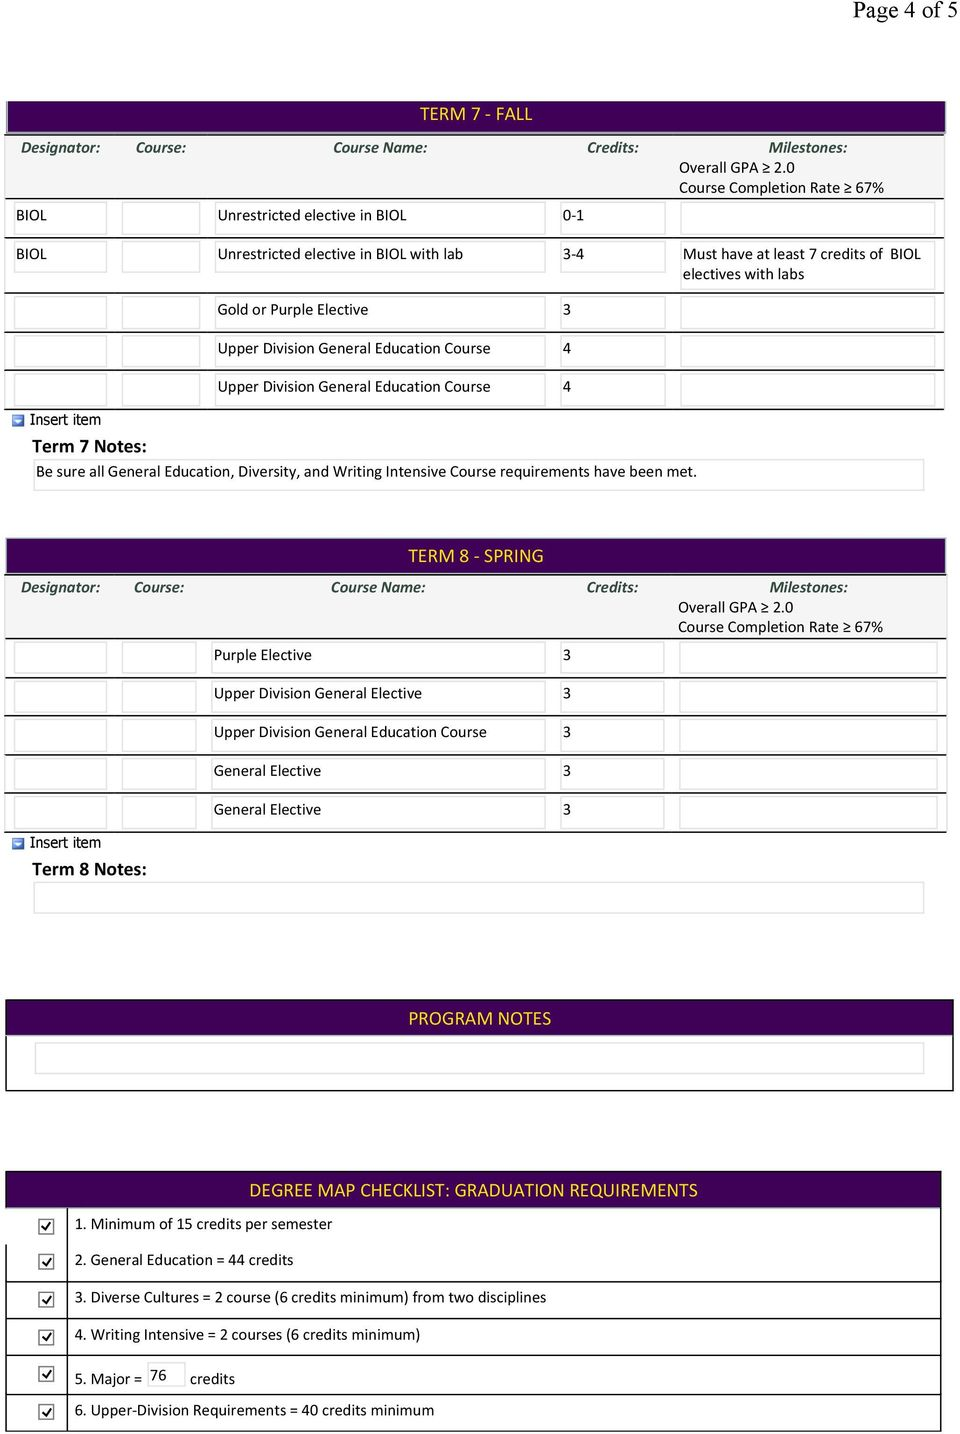 TERM 8 SPRING Term 8 Notes: Purple Elective Upper Division General Elective Upper Division General Education Course General Elective General Elective PROGRAM NOTES DEGREE MAP CHECKLIST: GRADUATION